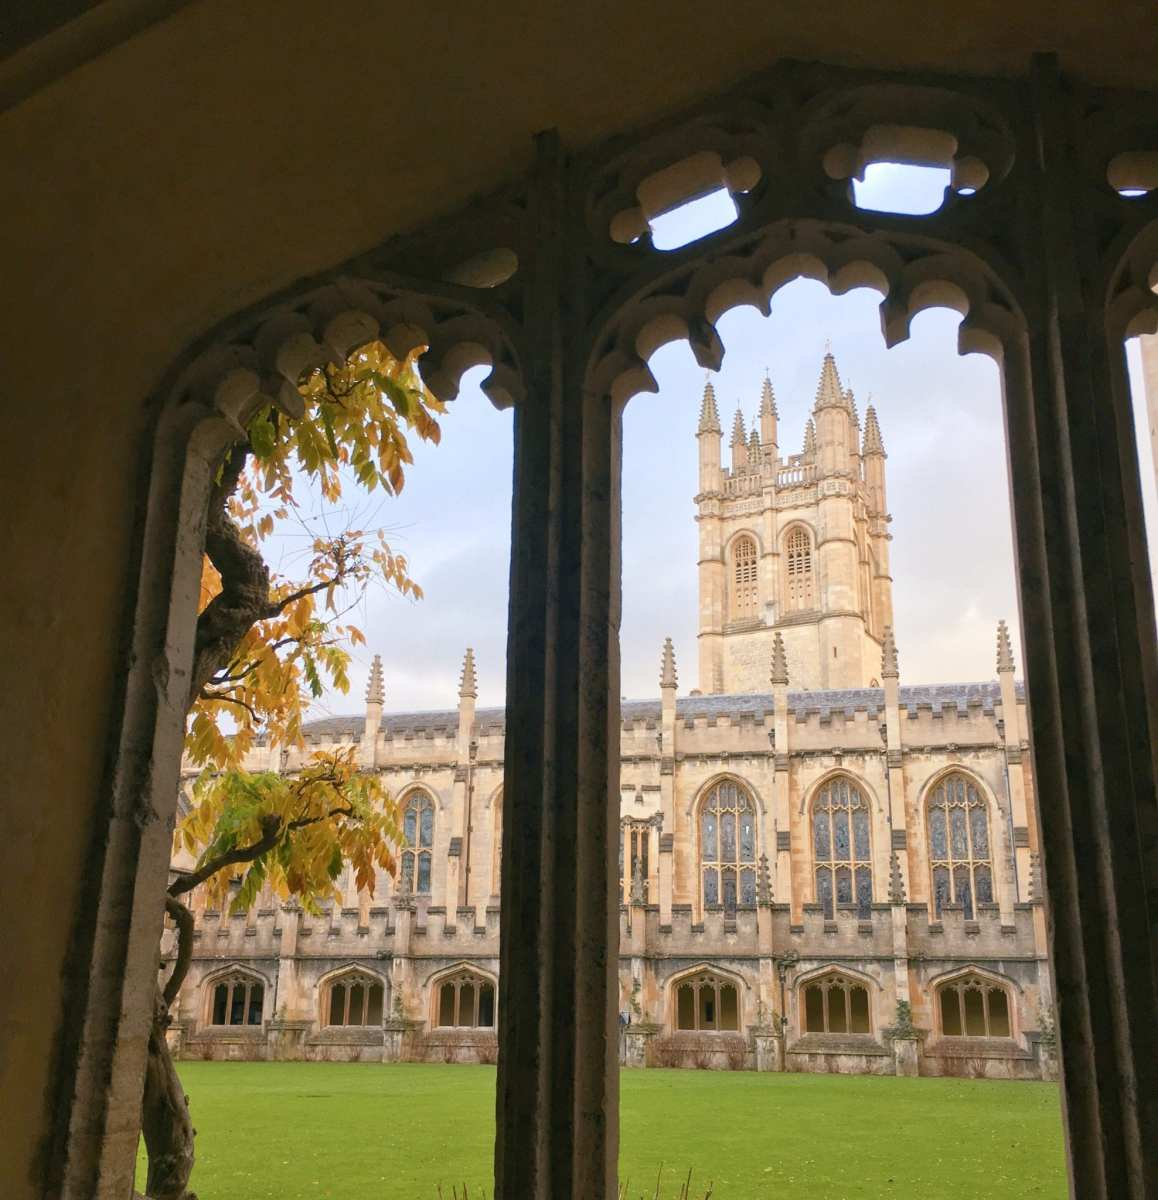 A guide to visiting Oxford's colleges